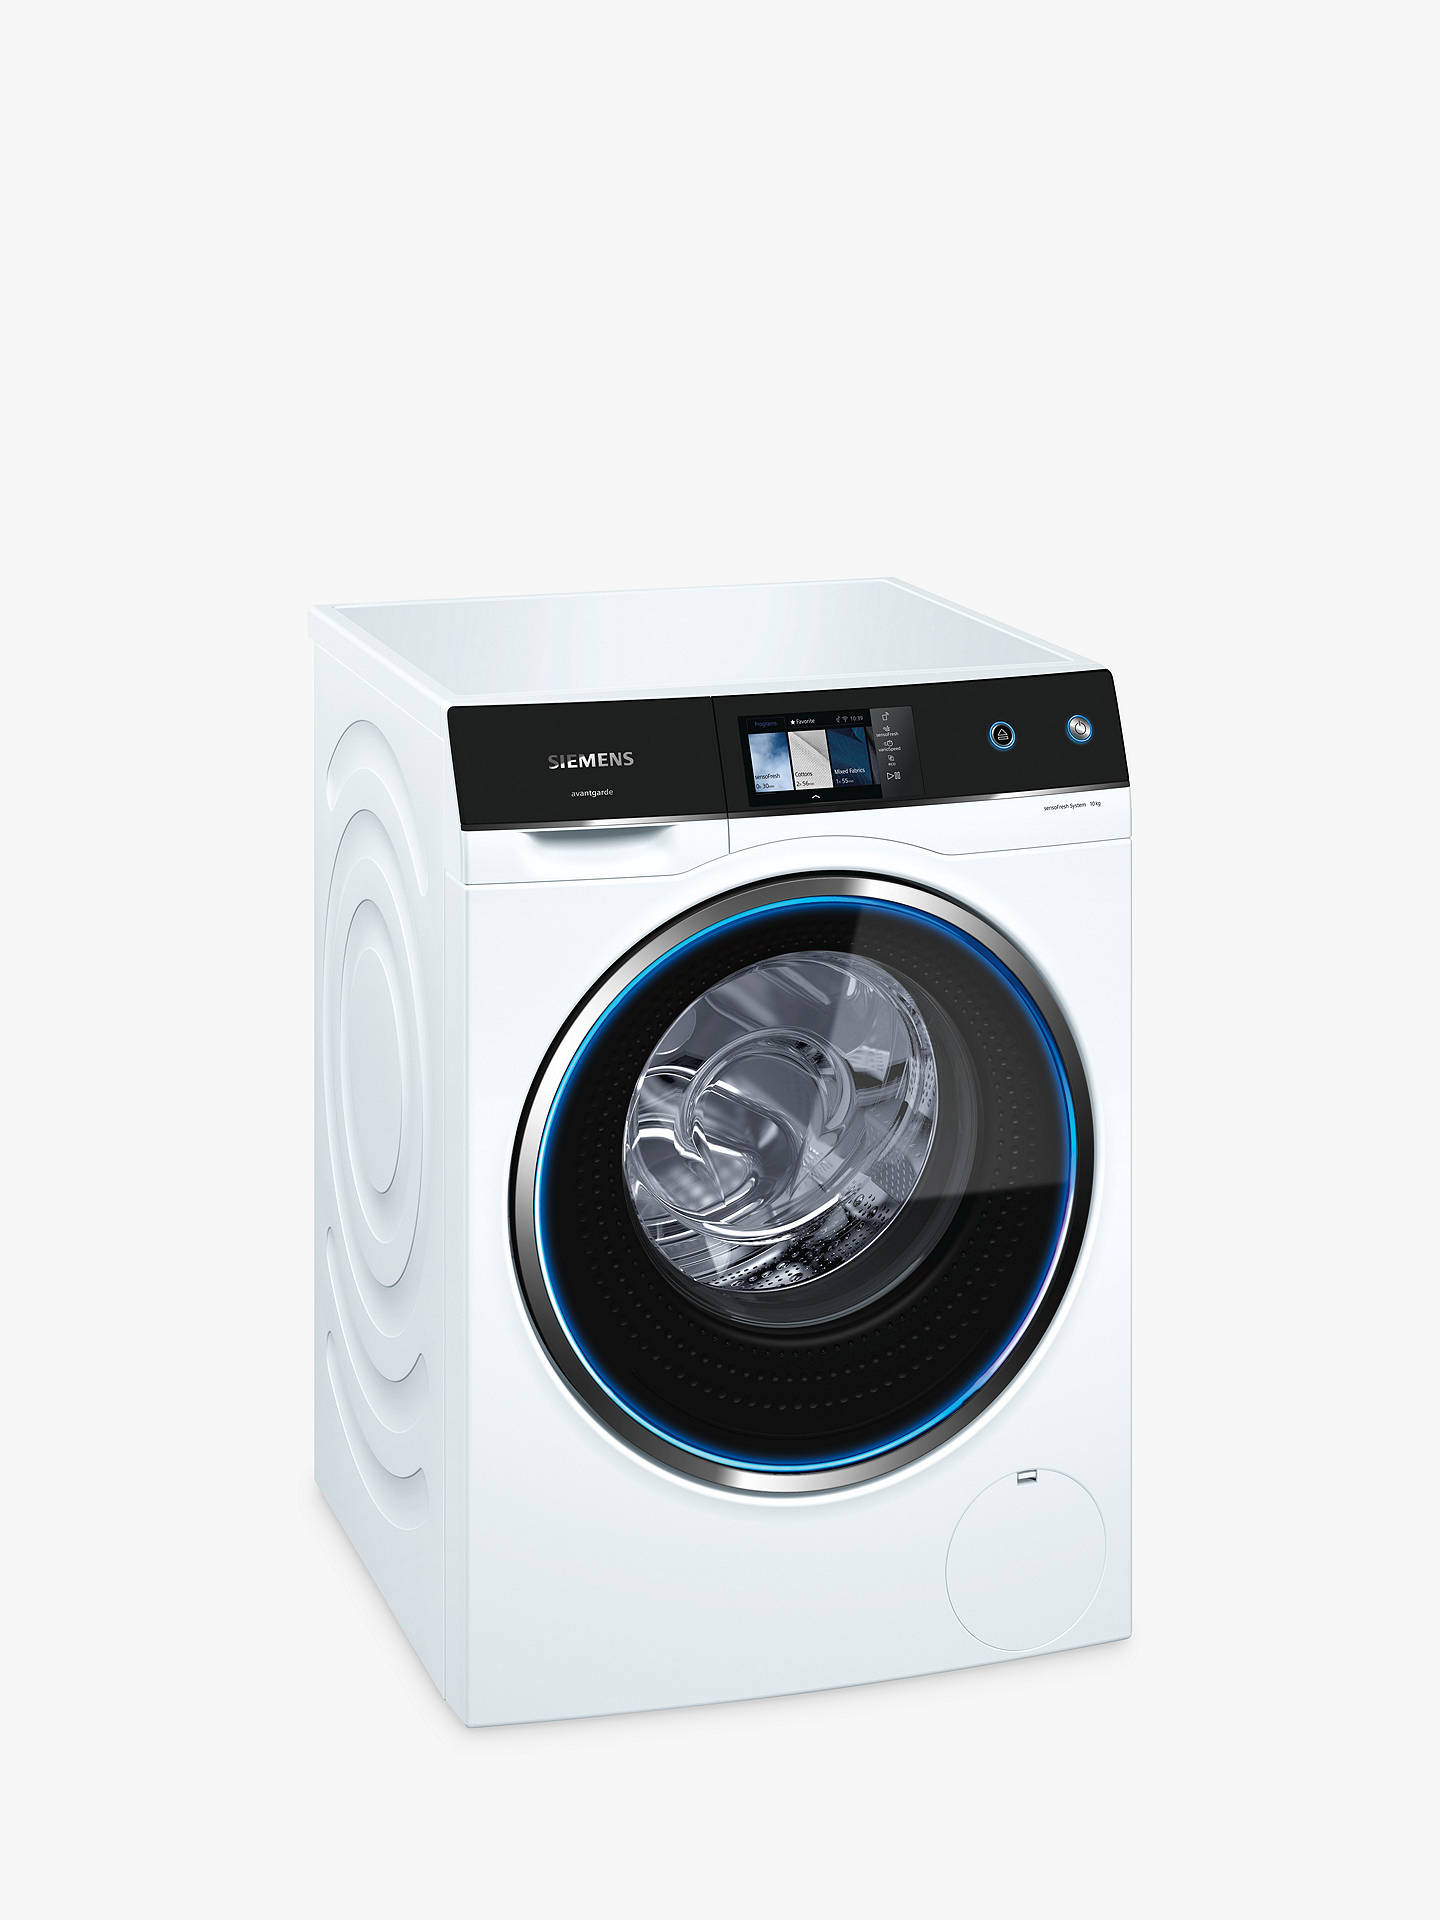 BuySiemens WM14U940GB Freestanding Washing Machine, 10kg Load, A+++ Energy Rating, 1400rpm Spin, White Online at johnlewis.com